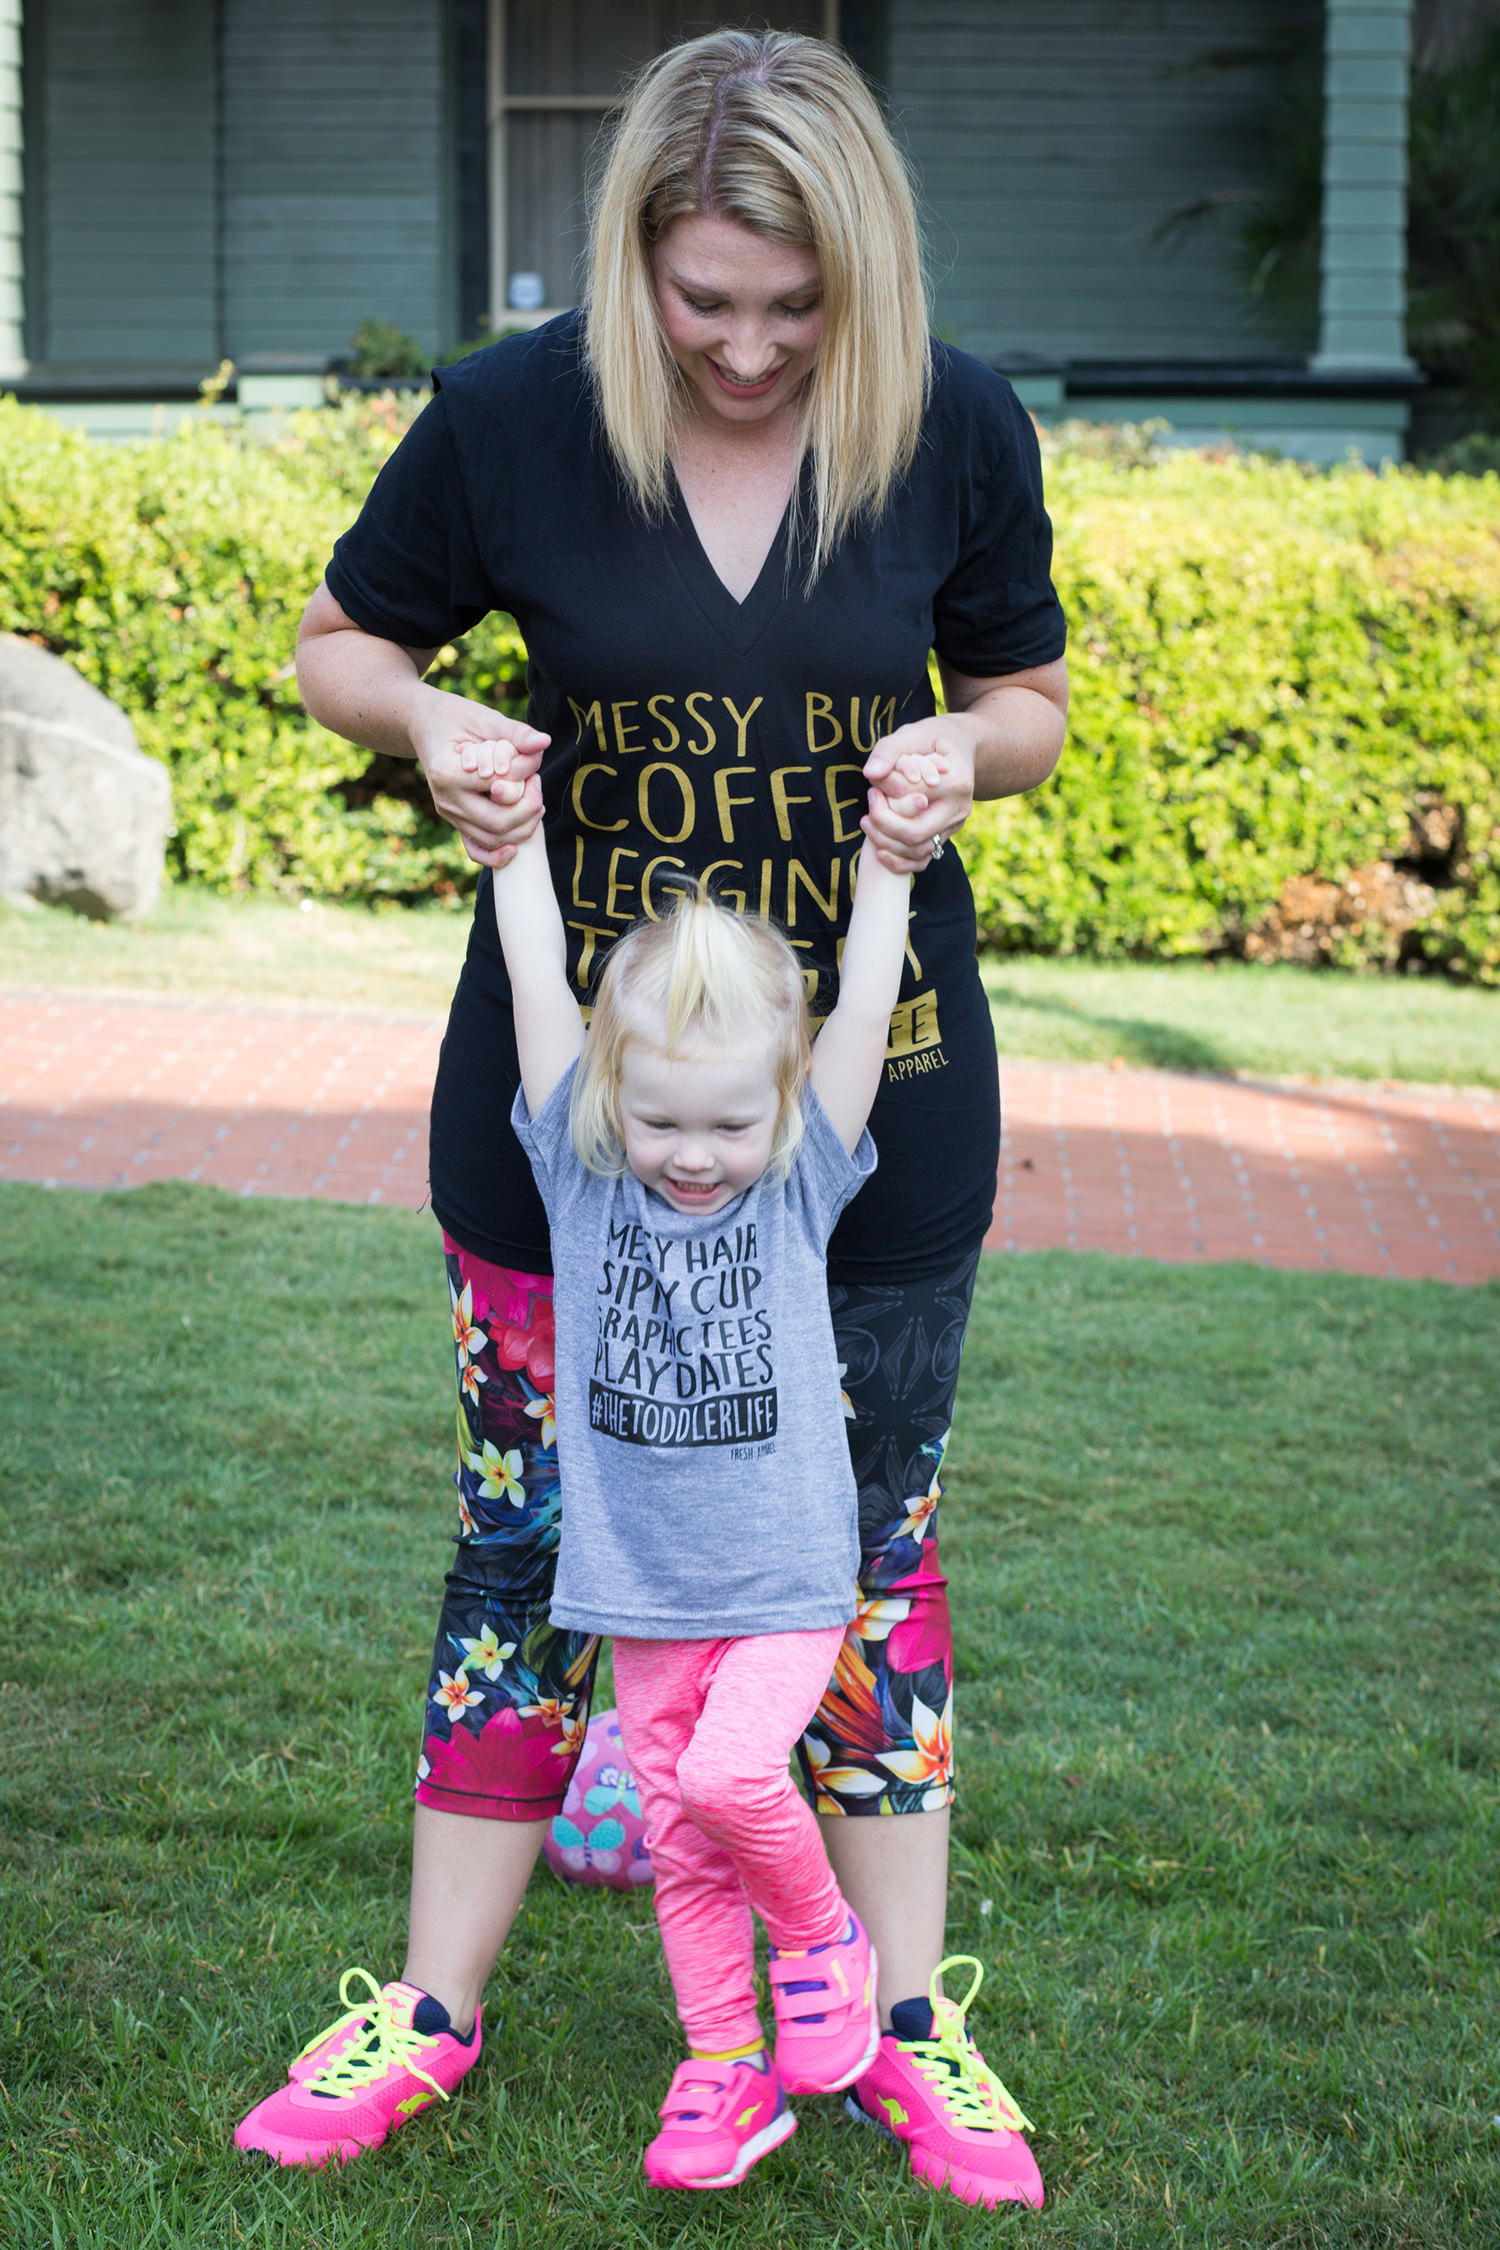 Graphic tees and matching pink sneakers, best mom outfit ever!